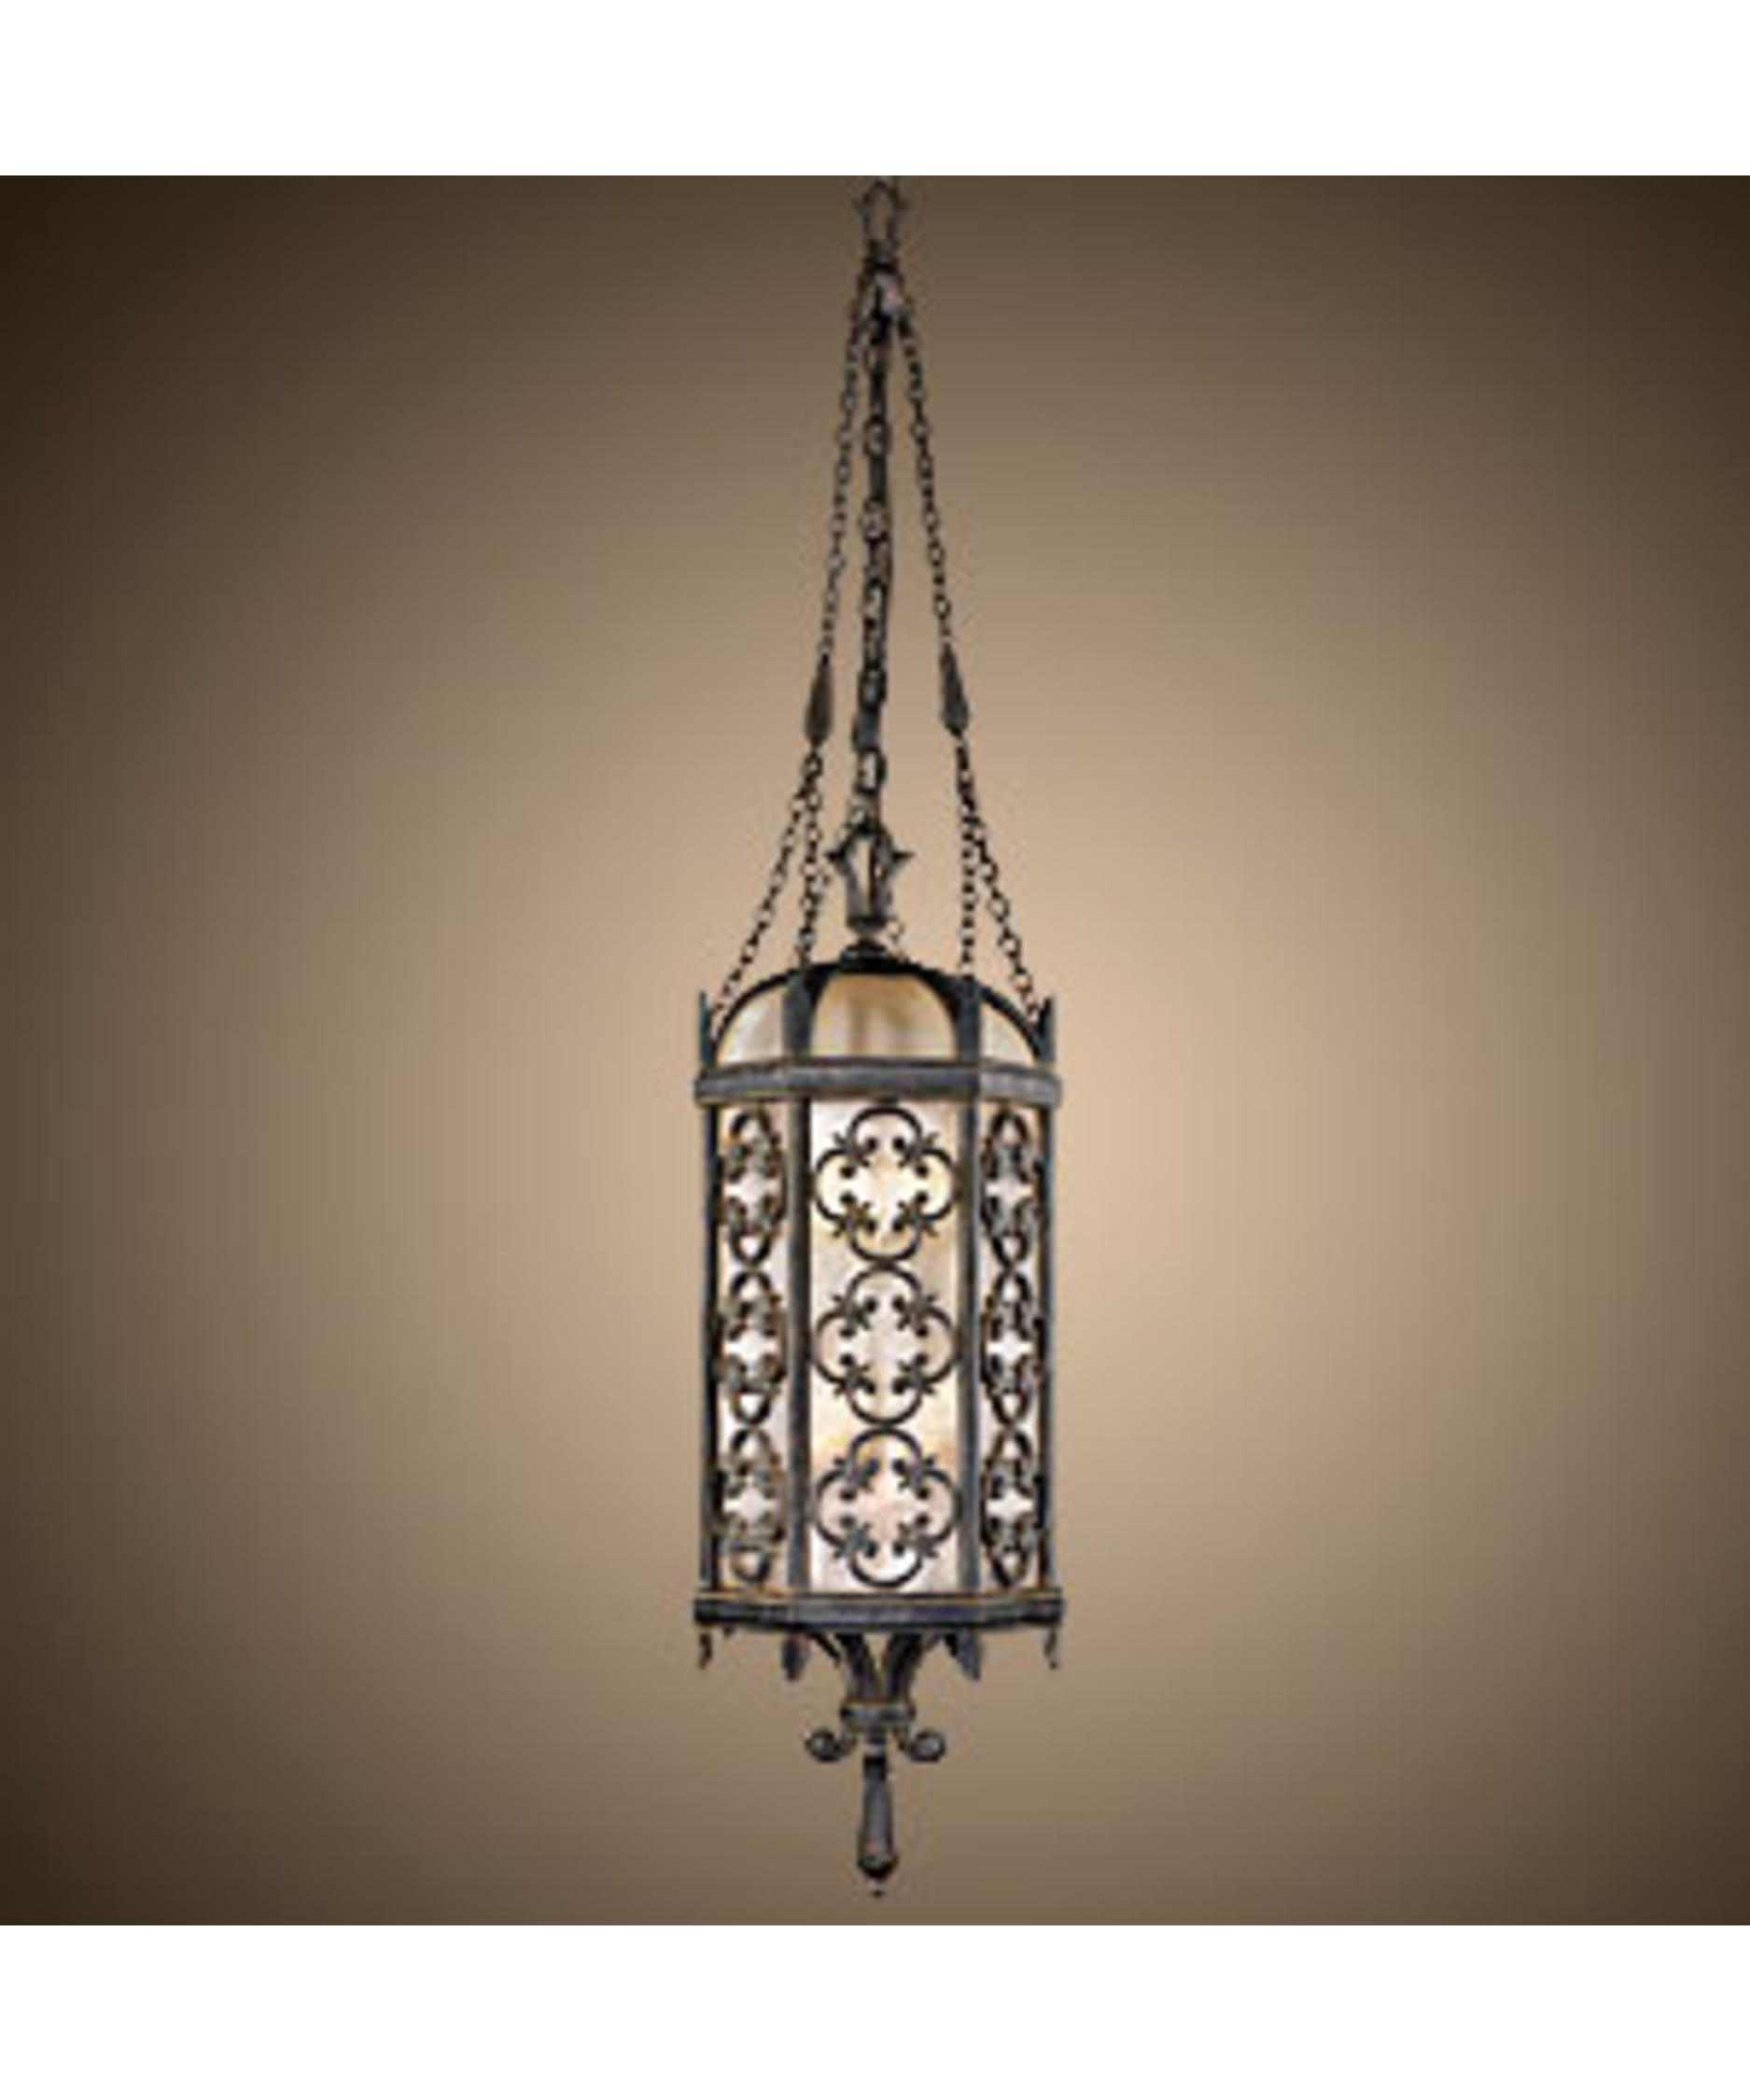 Outdoor hanging lamp - Shown In Wrought Iron Finish And Subtle Iridescent Textured Glass Glass